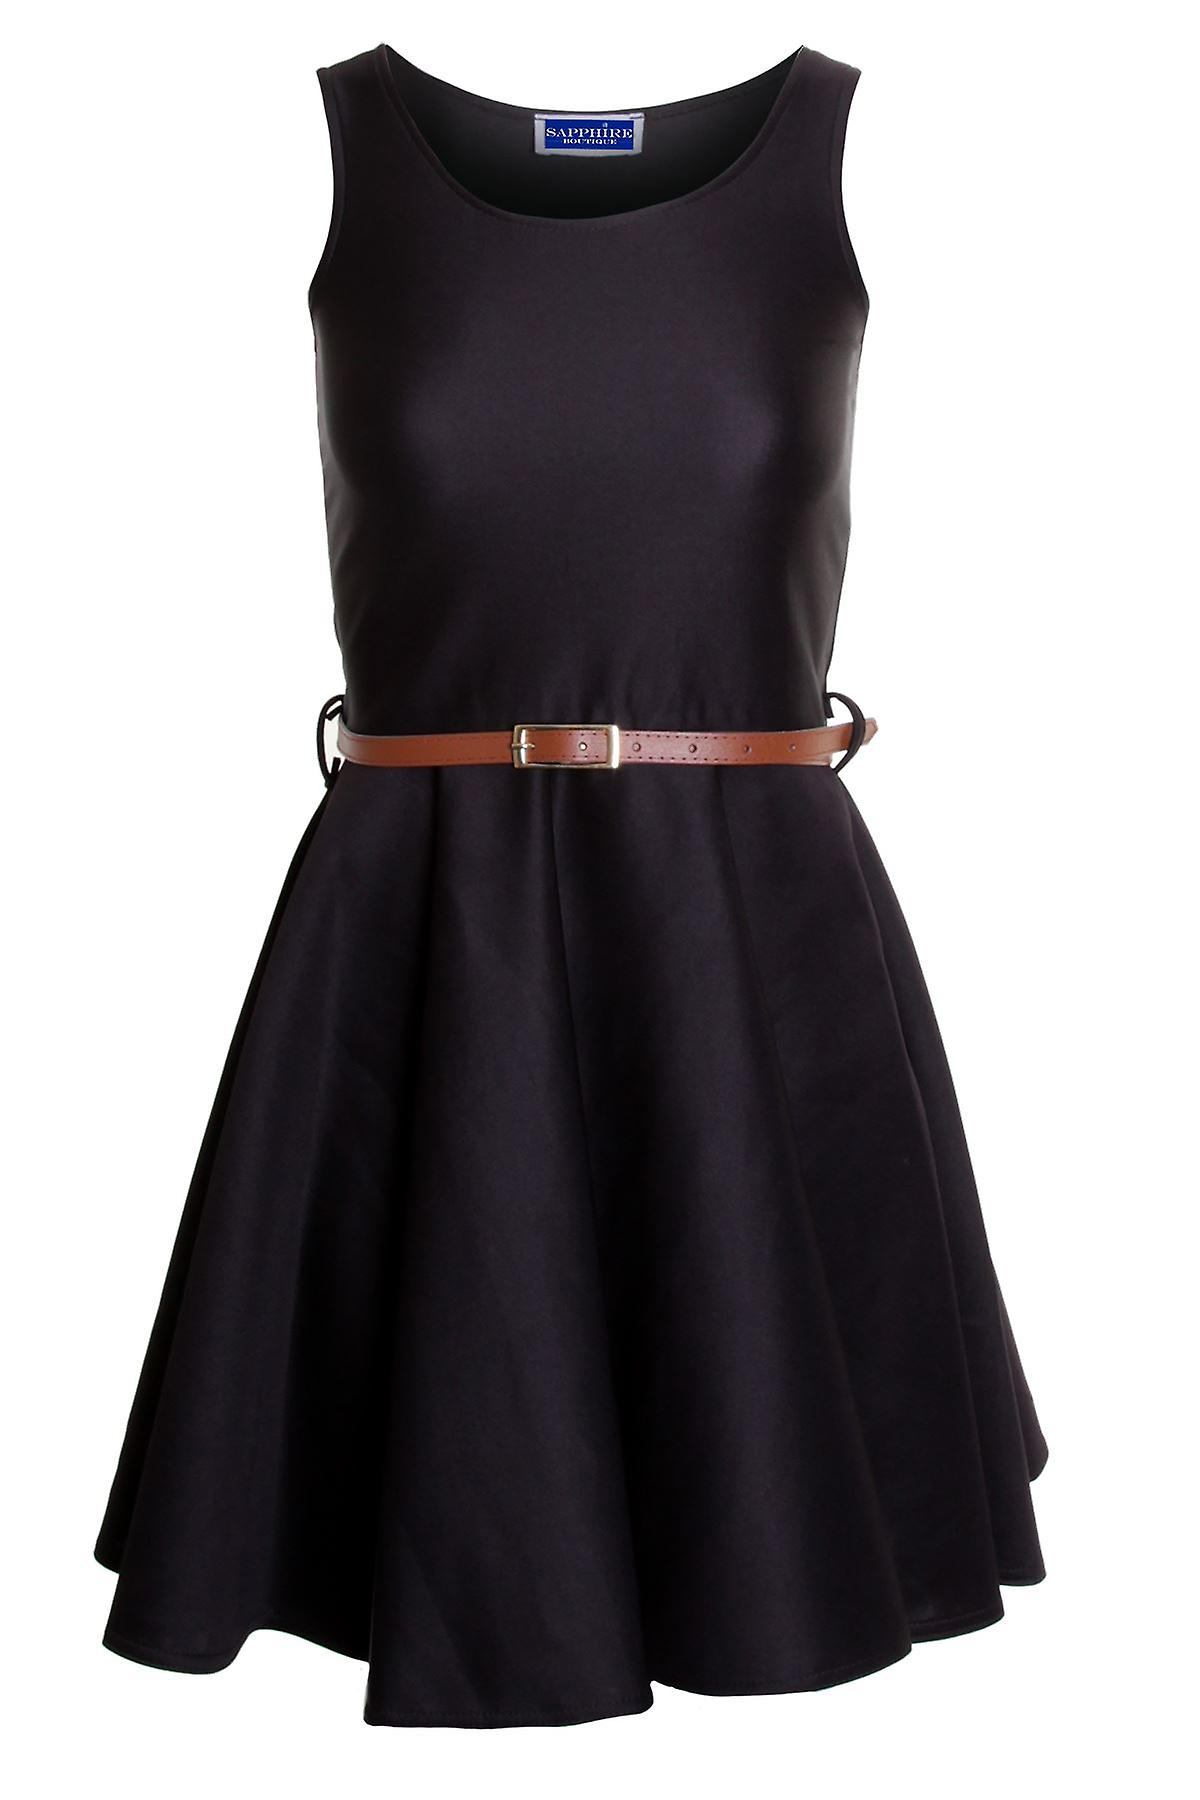 Ladies Smart Skater Belted Pleated Skirt Mini Party Top Women's Dress